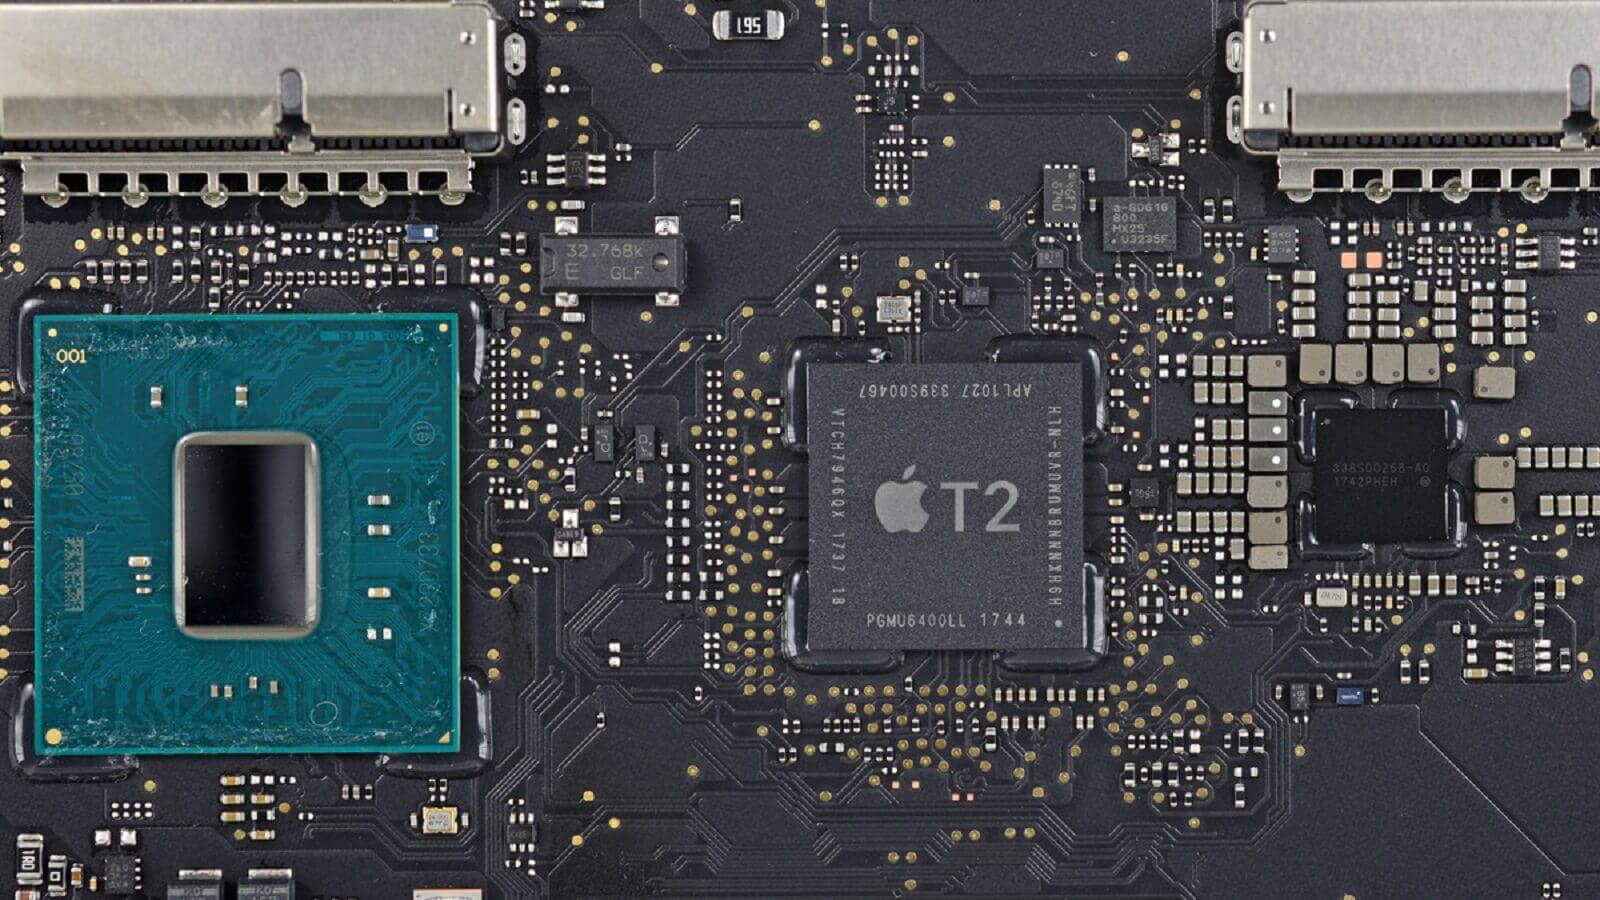 Apples T2 Coprocessor Blocks Some Third Party Repairs Of Macs This Article Is About The Electronic Component For Physical News